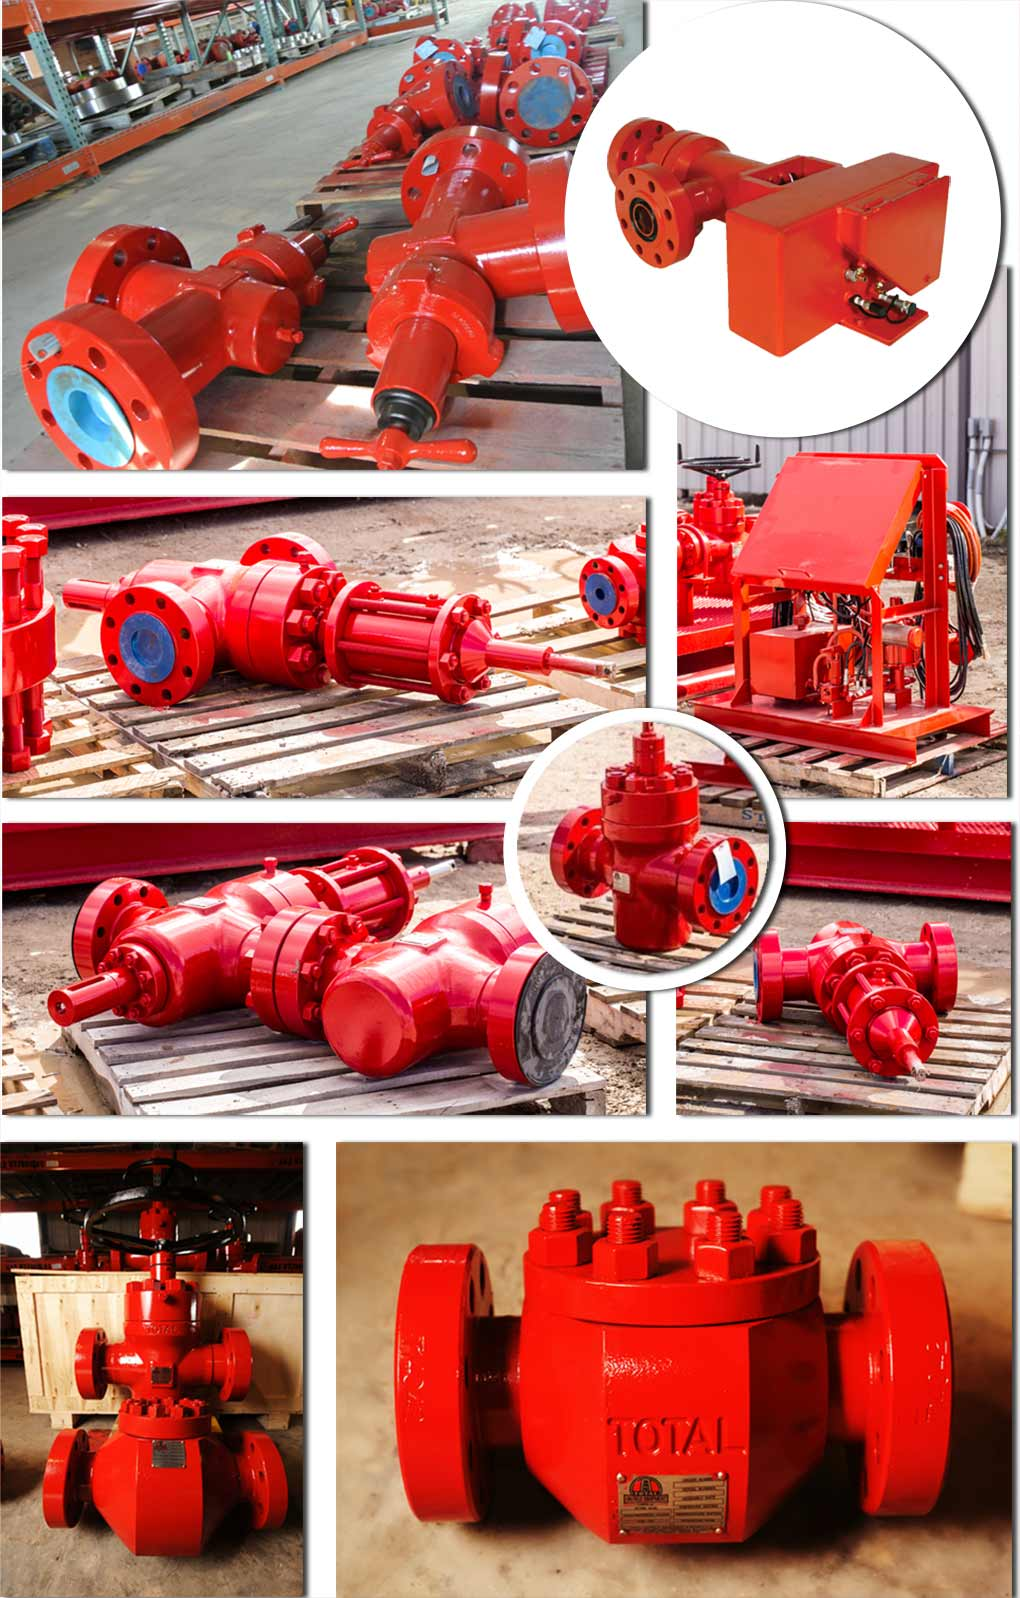 chokes and valves